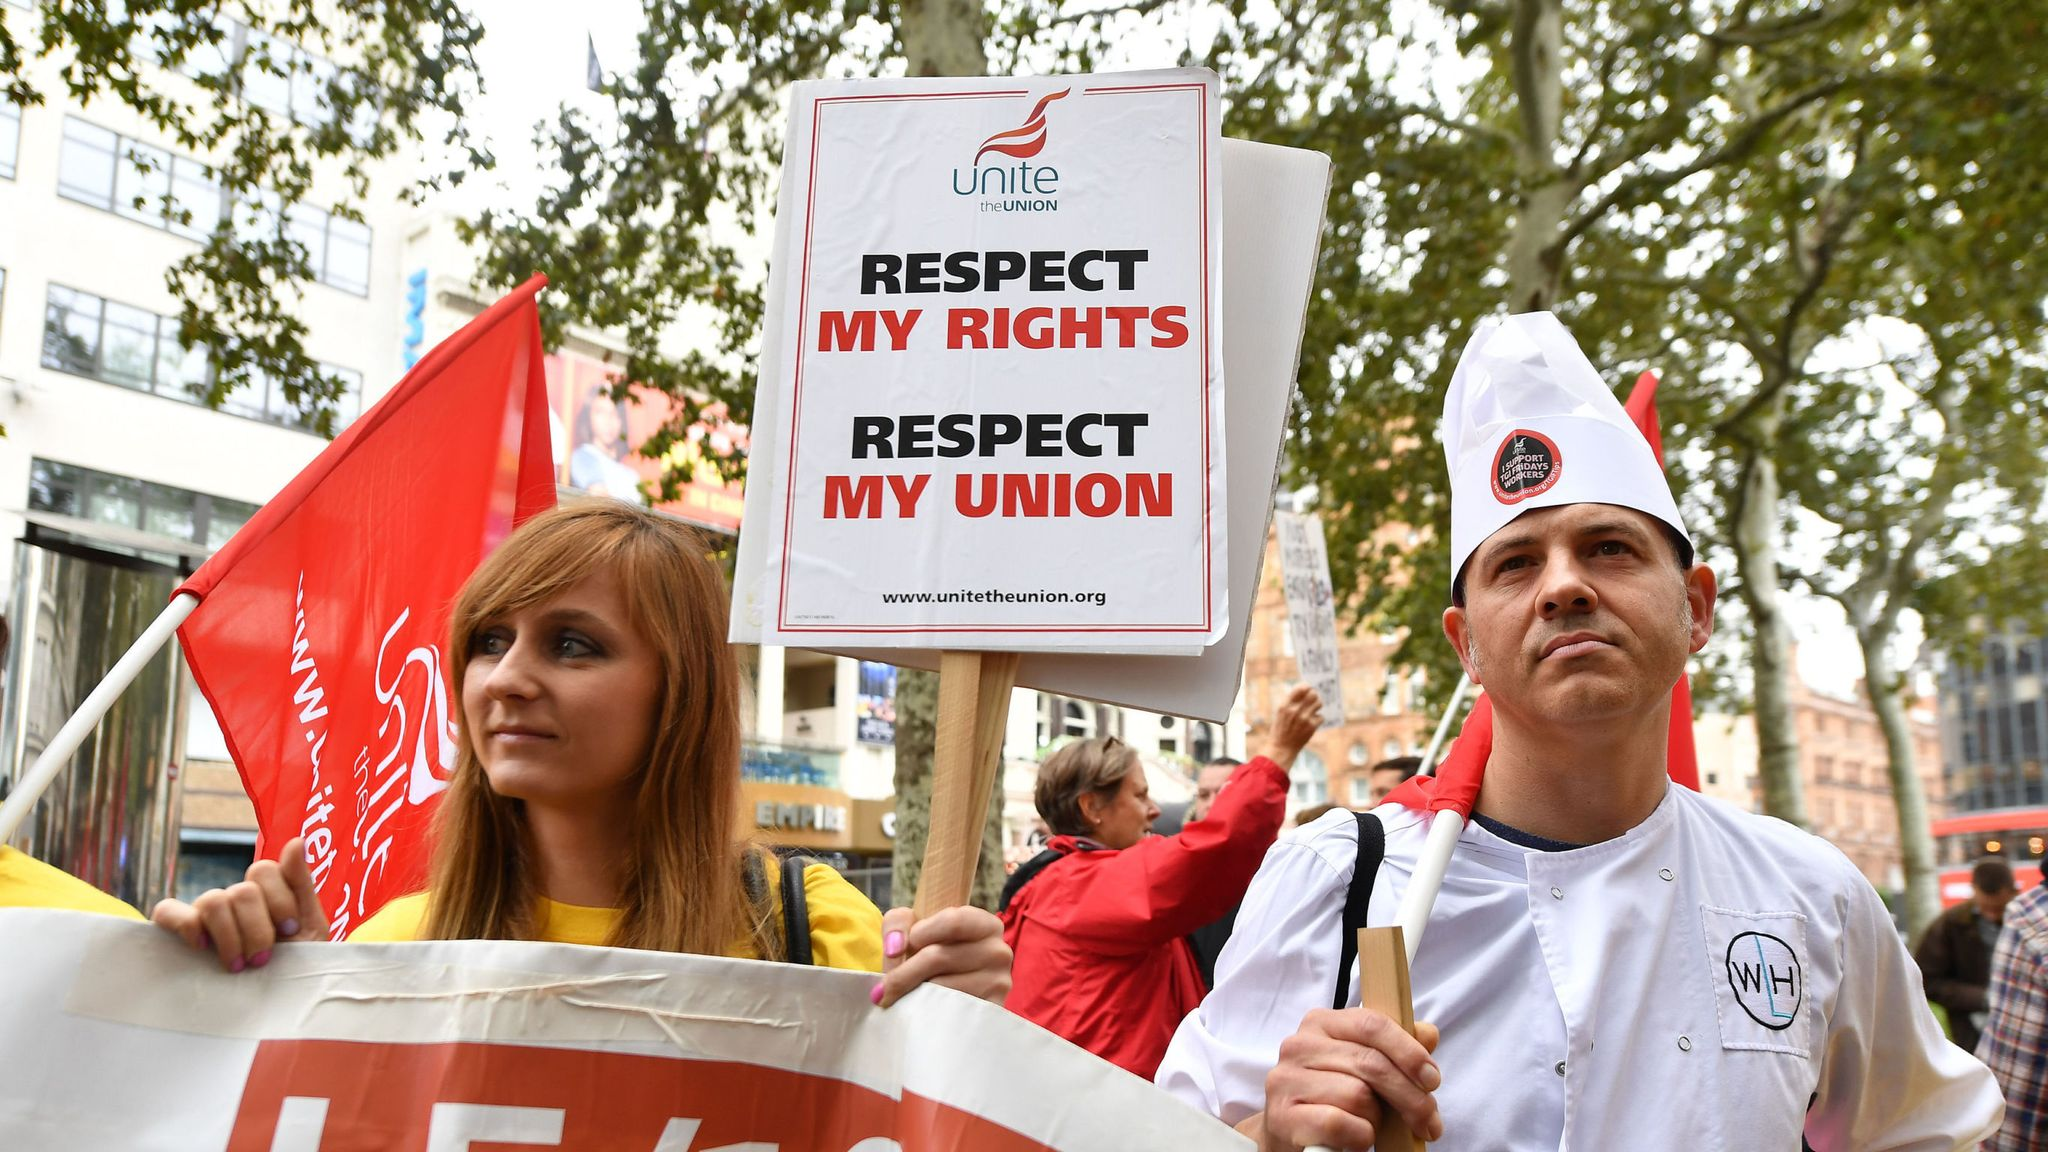 Hospitality workers protest over pay and conditions